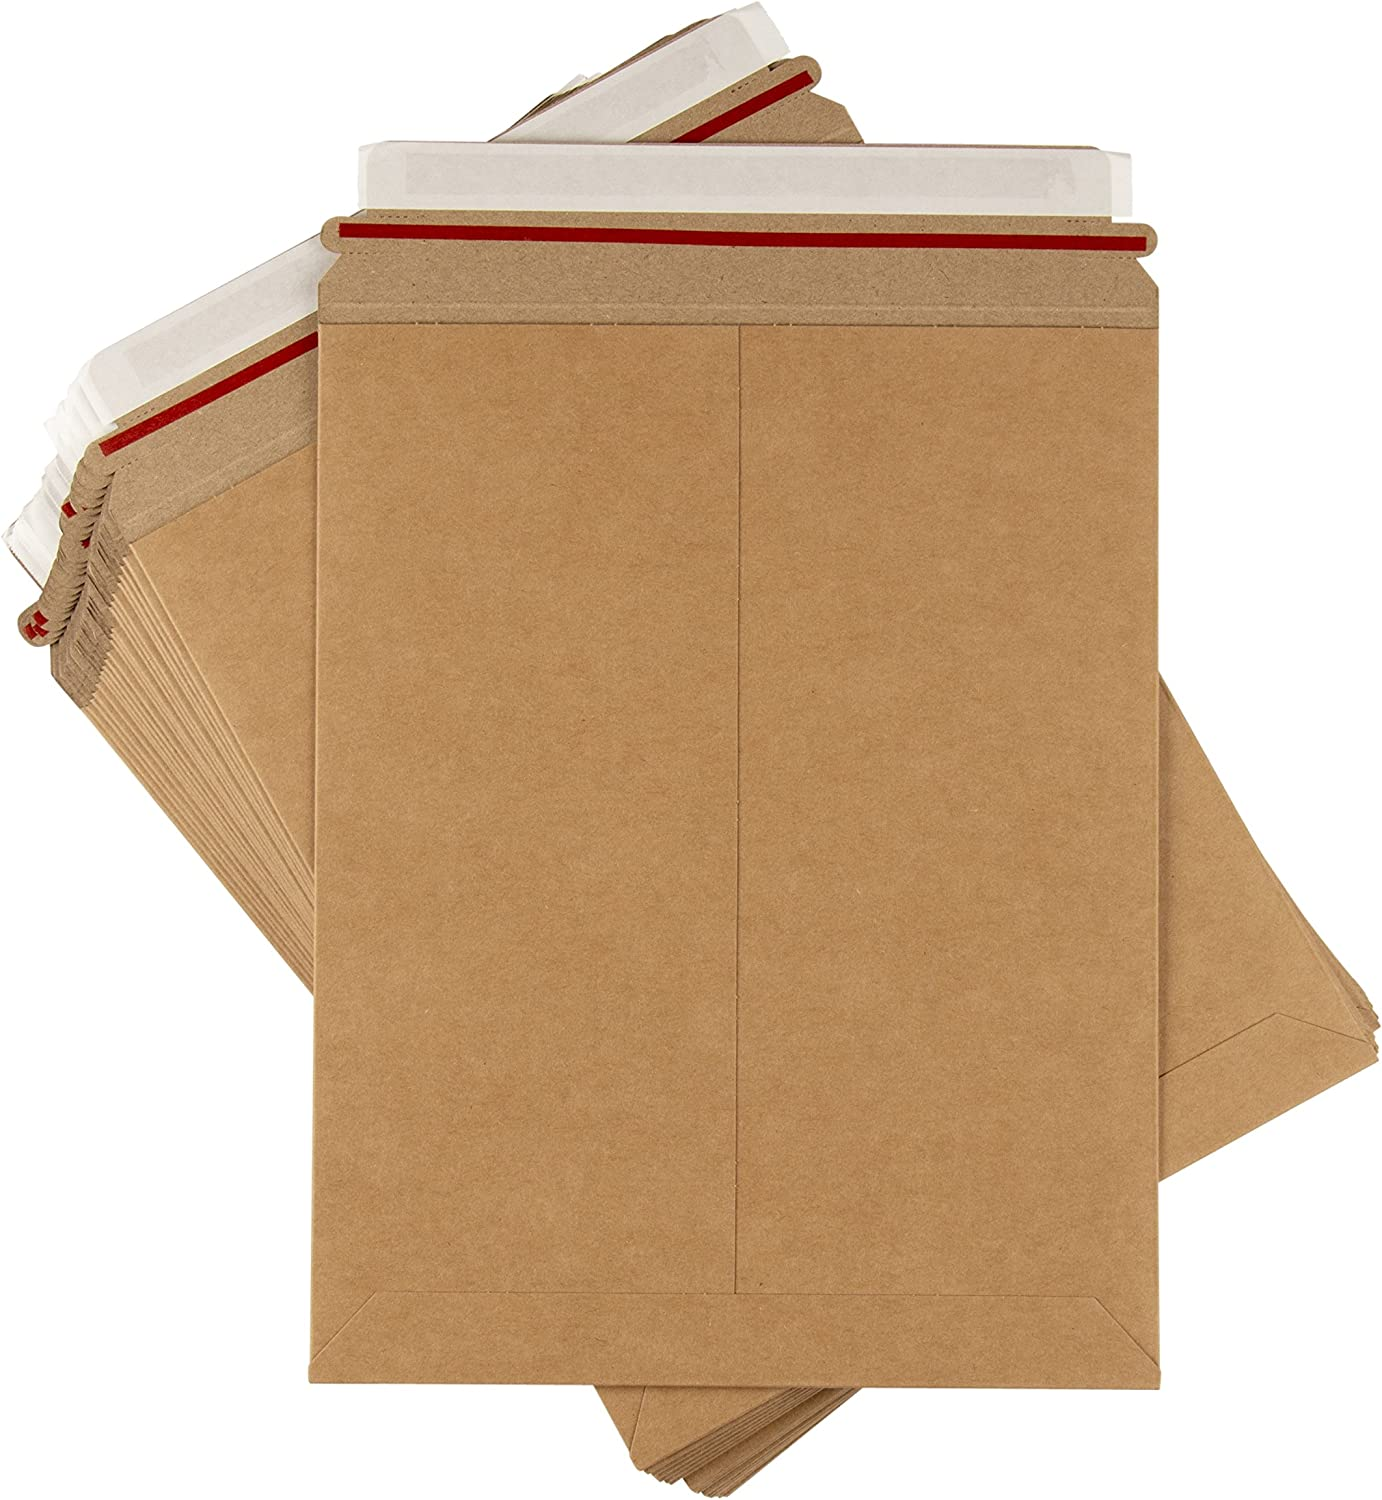 25 EcoSwift 6.5 x 4.5 Rigid Photo Mailers Stay Flats White Cardboard Self Seal Envelopes